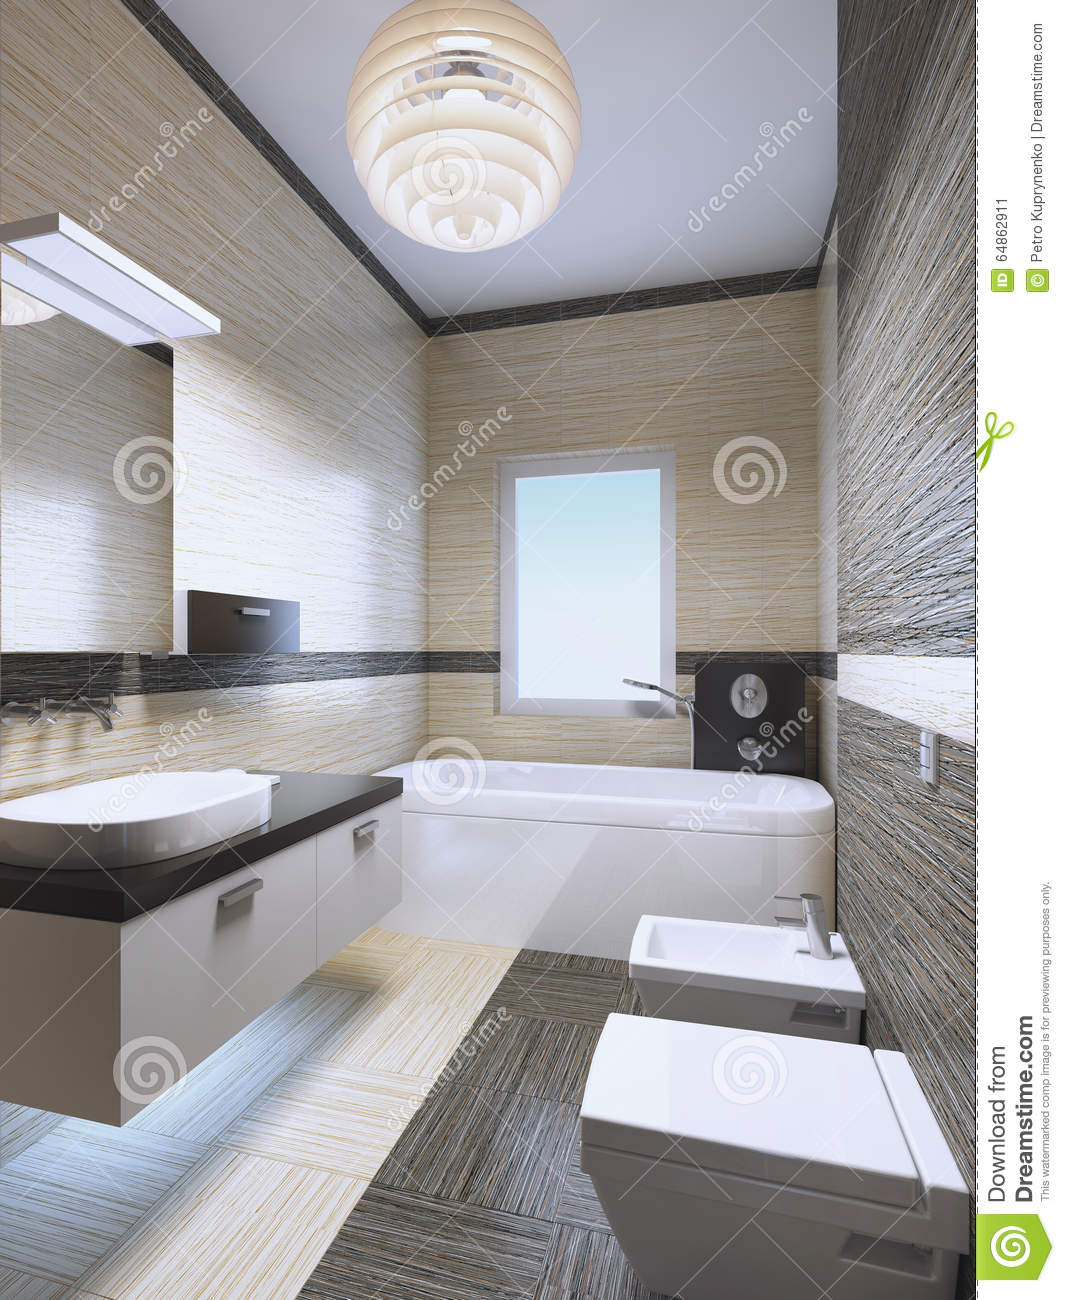 Extravagant Bathrooms Bright Expensive Bathroom With Neon Lights Stock Photo